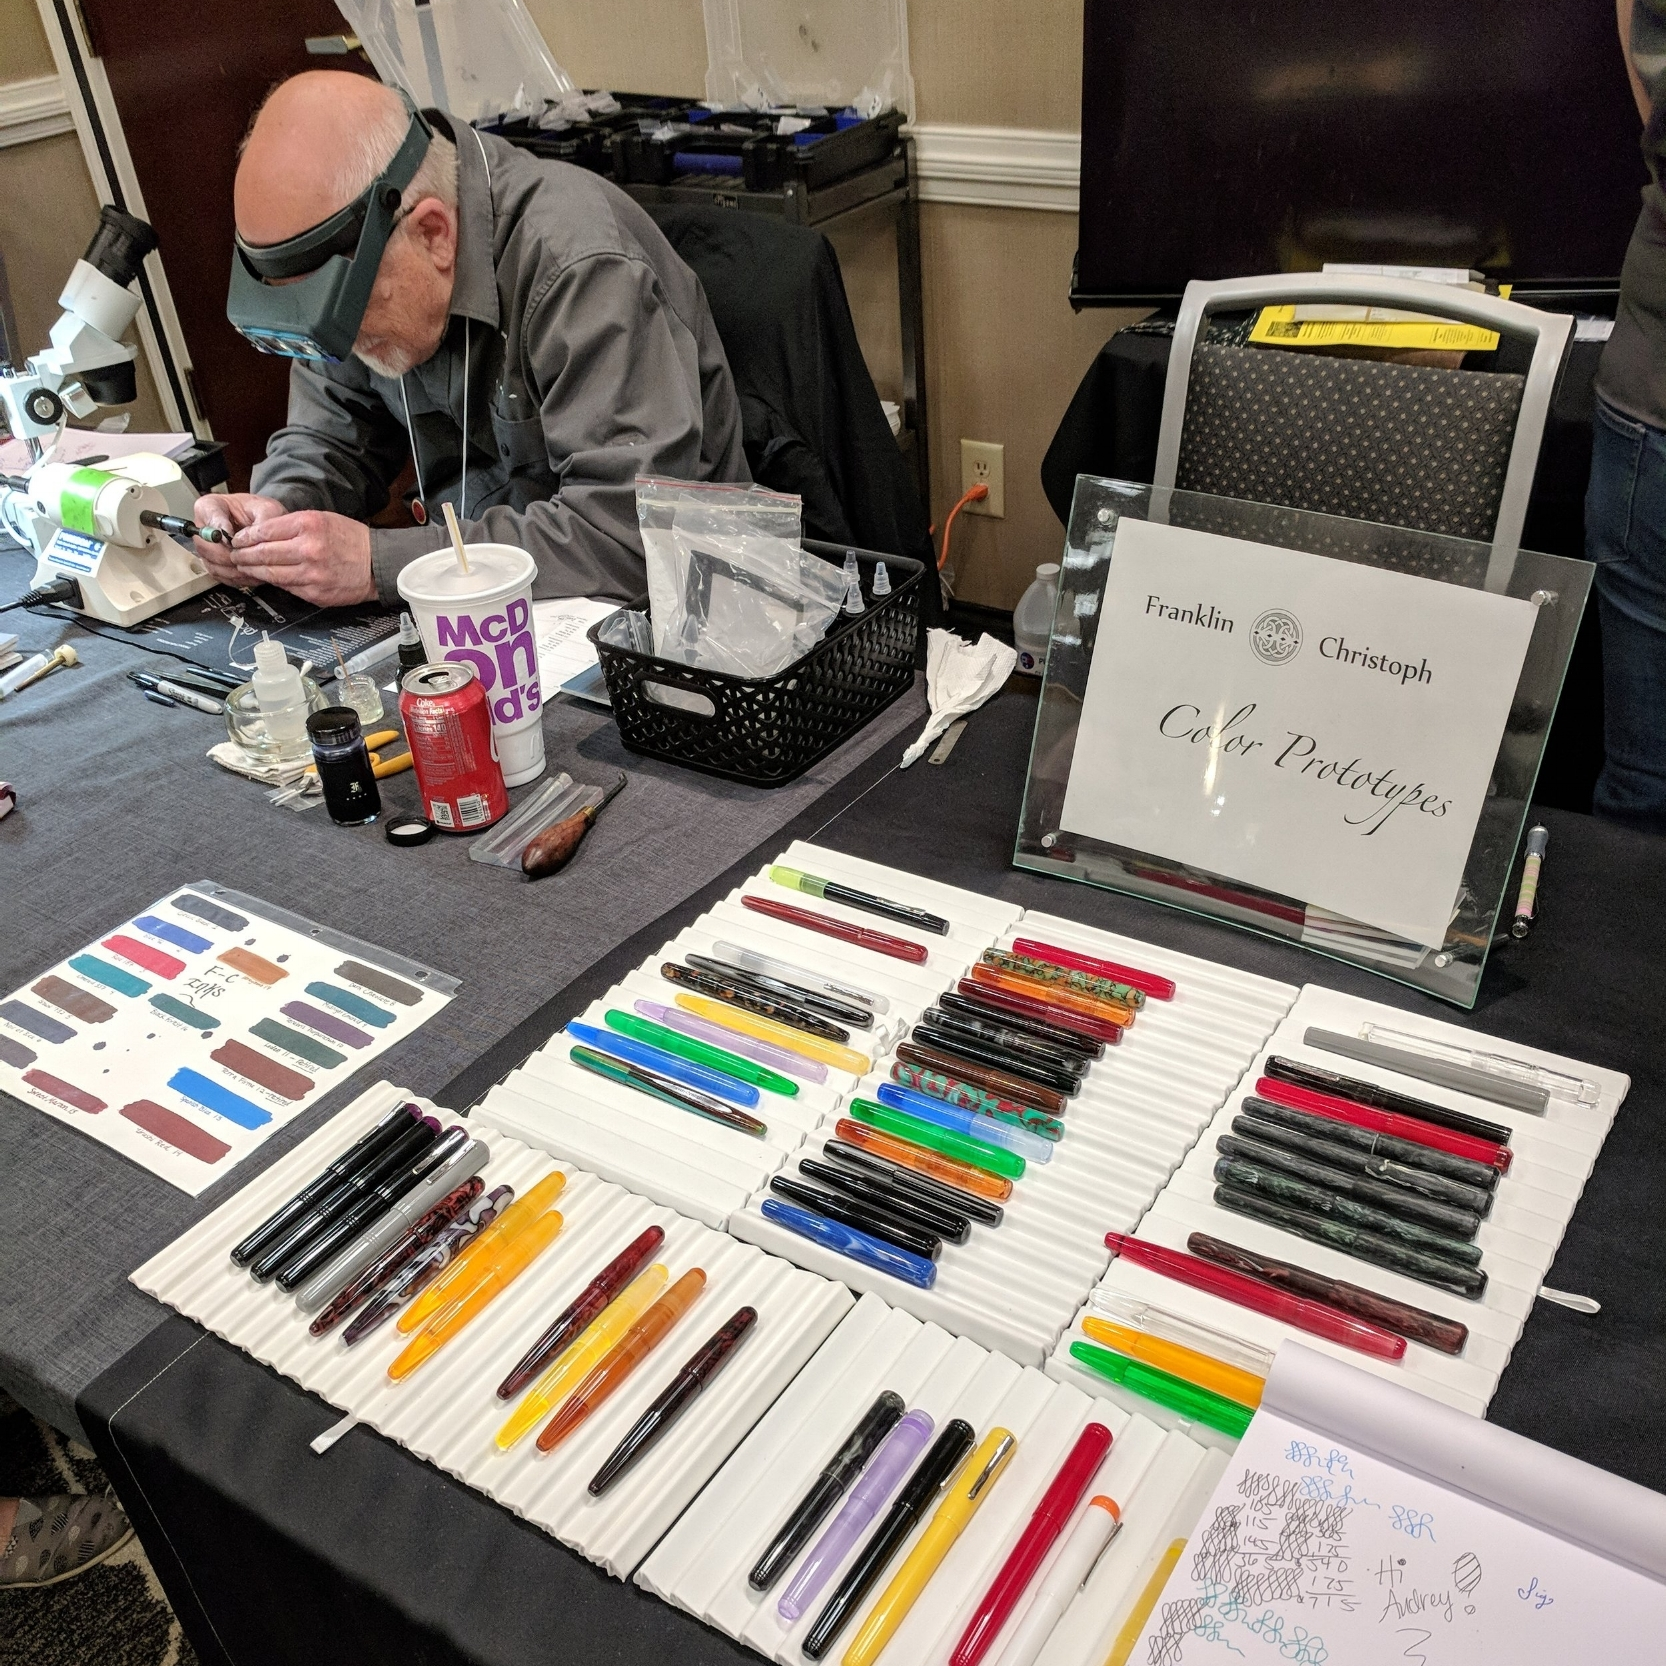 Jim Rouse was at the  Franklin-Christoph  table grinding away, right after the color prototypes were unveiled.